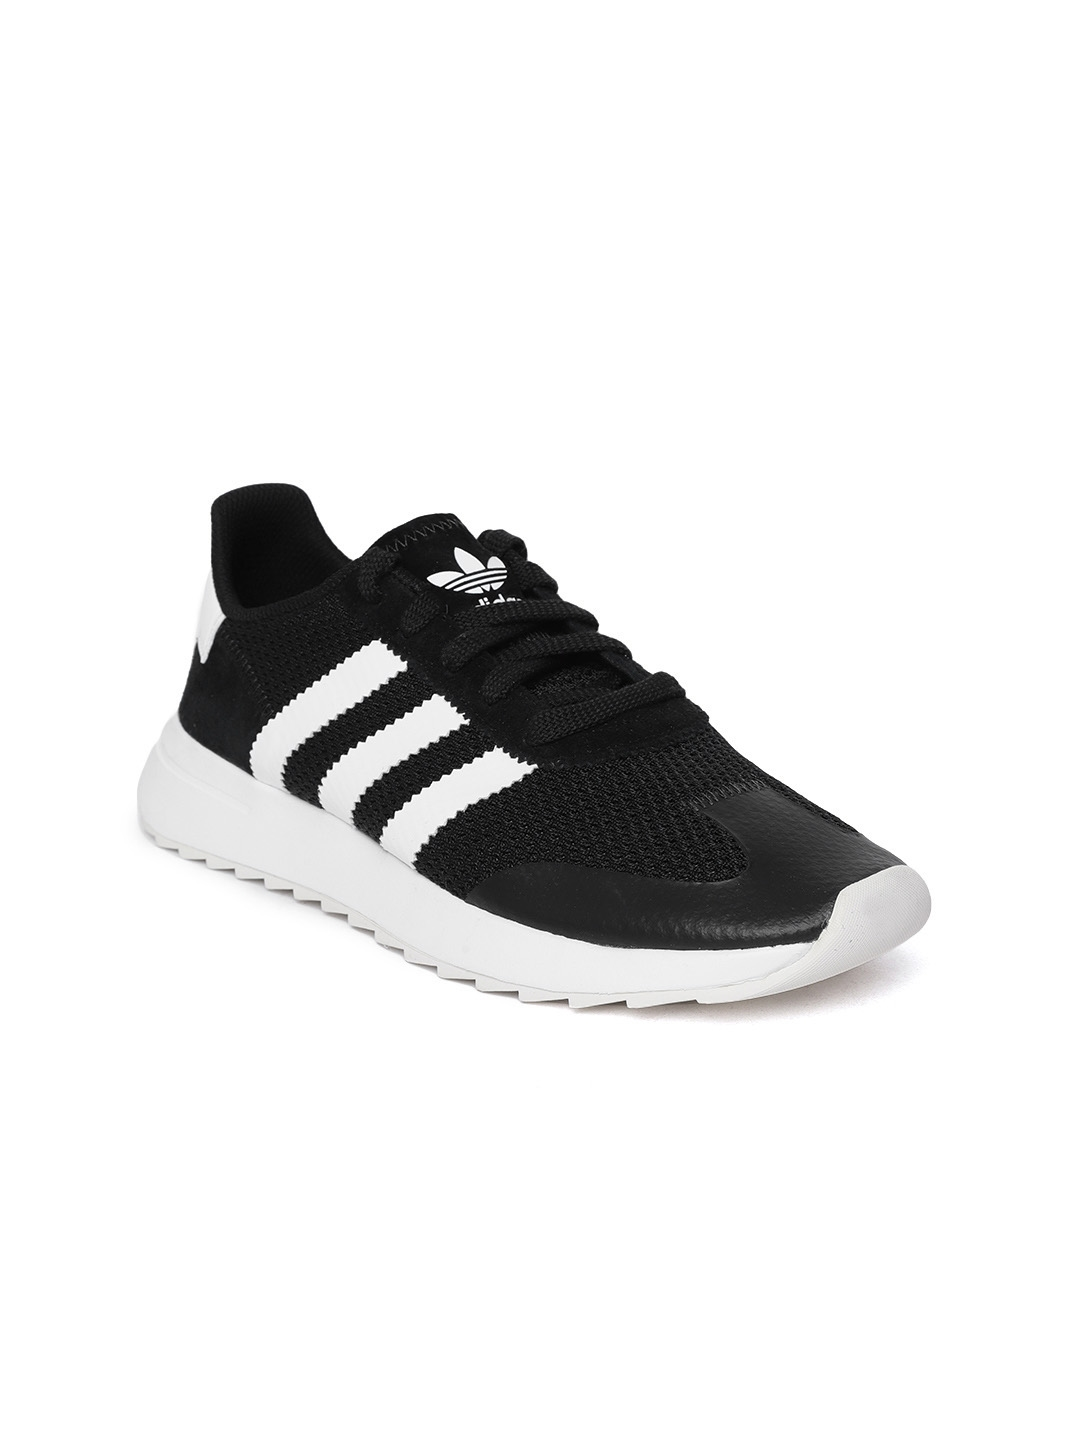 21d0eba809c Buy ADIDAS Originals Women Black Woven Design Flashrunner Sneakers ...